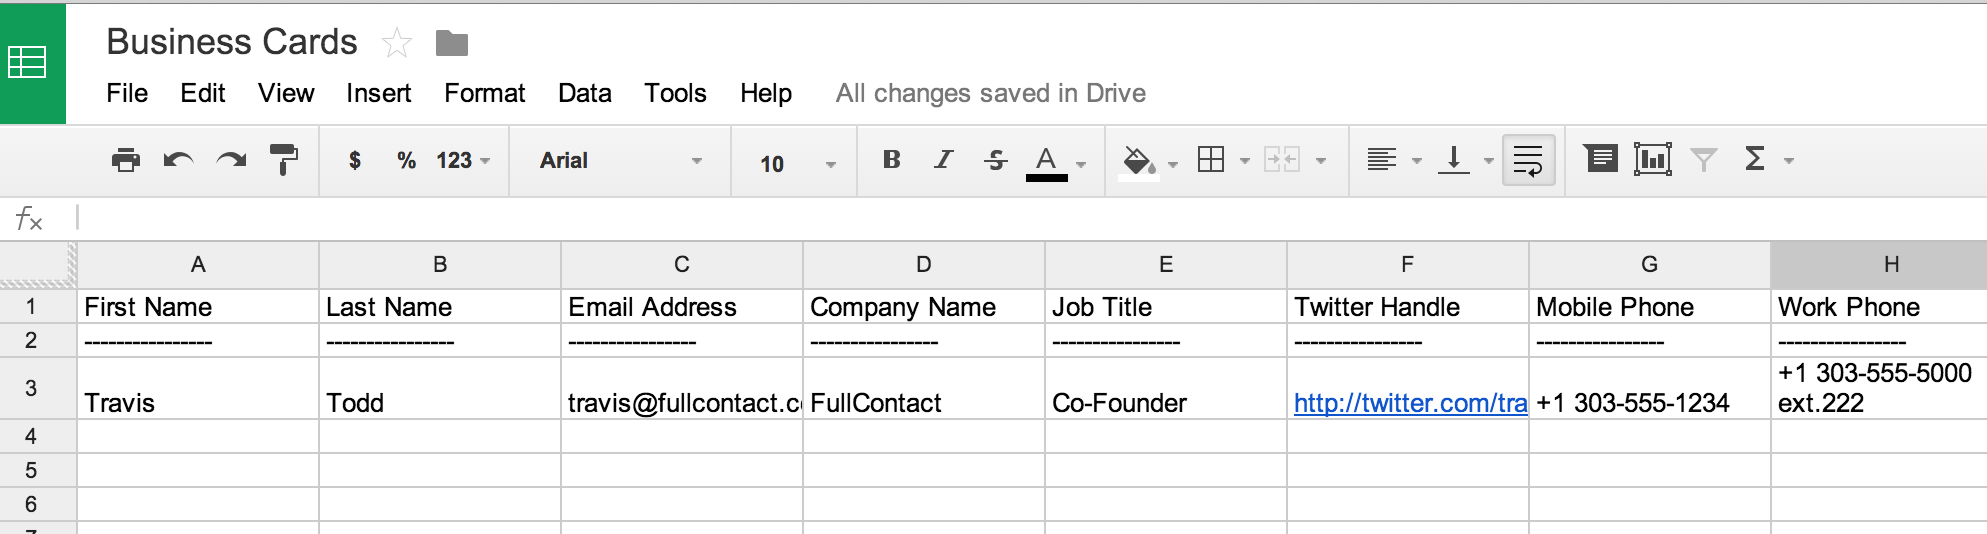 Scan Document To Excel Spreadsheet With Regard To How To Scan Business Cards Into A Spreadsheet